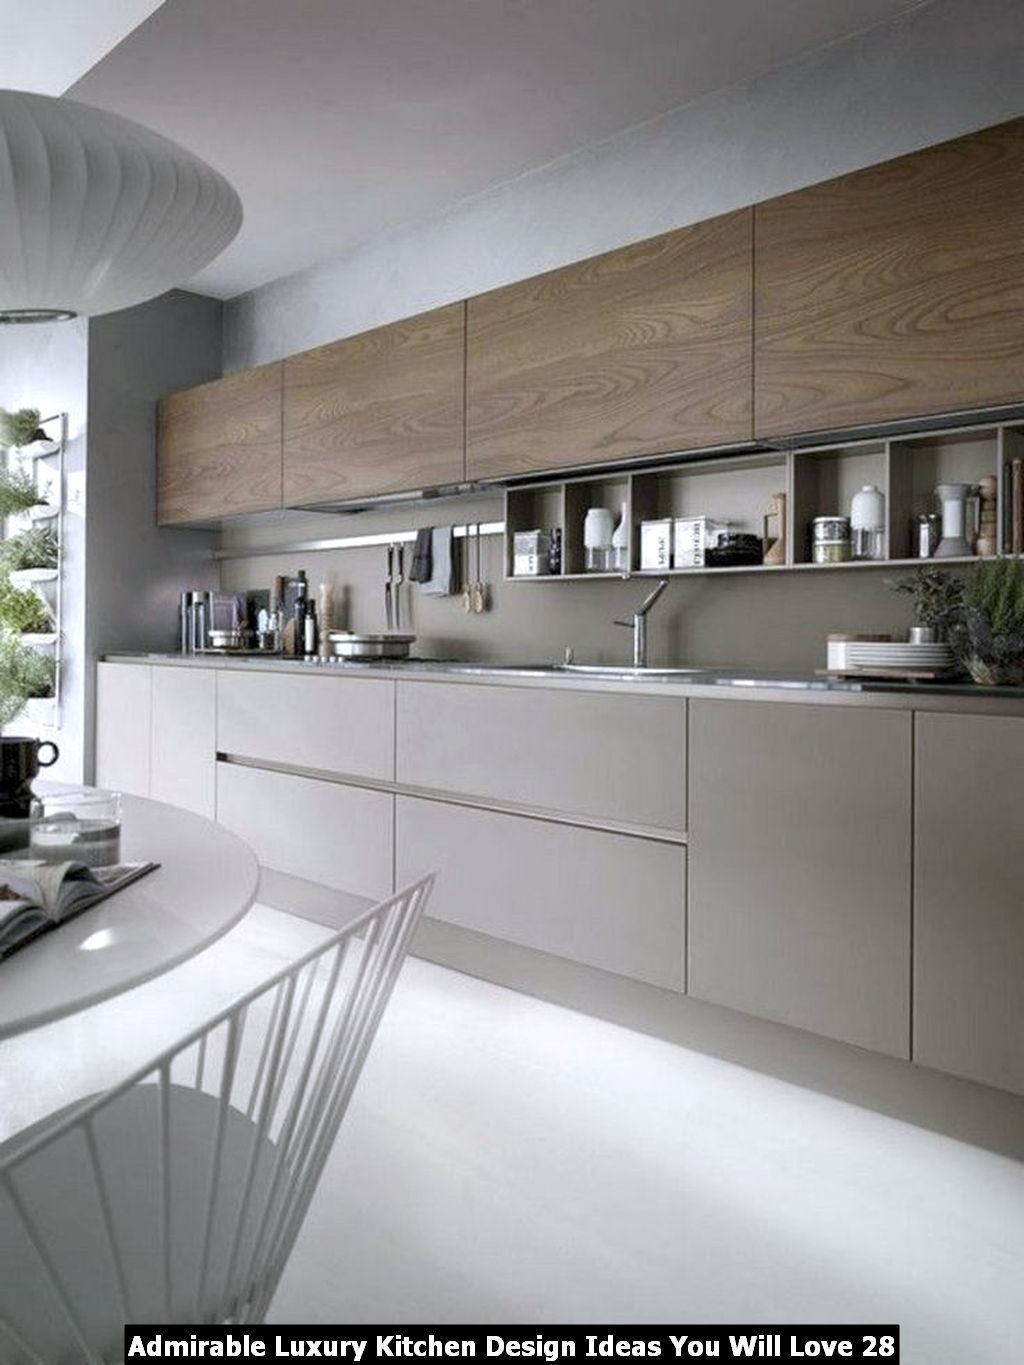 Admirable Luxury Kitchen Design Ideas You Will Love 28